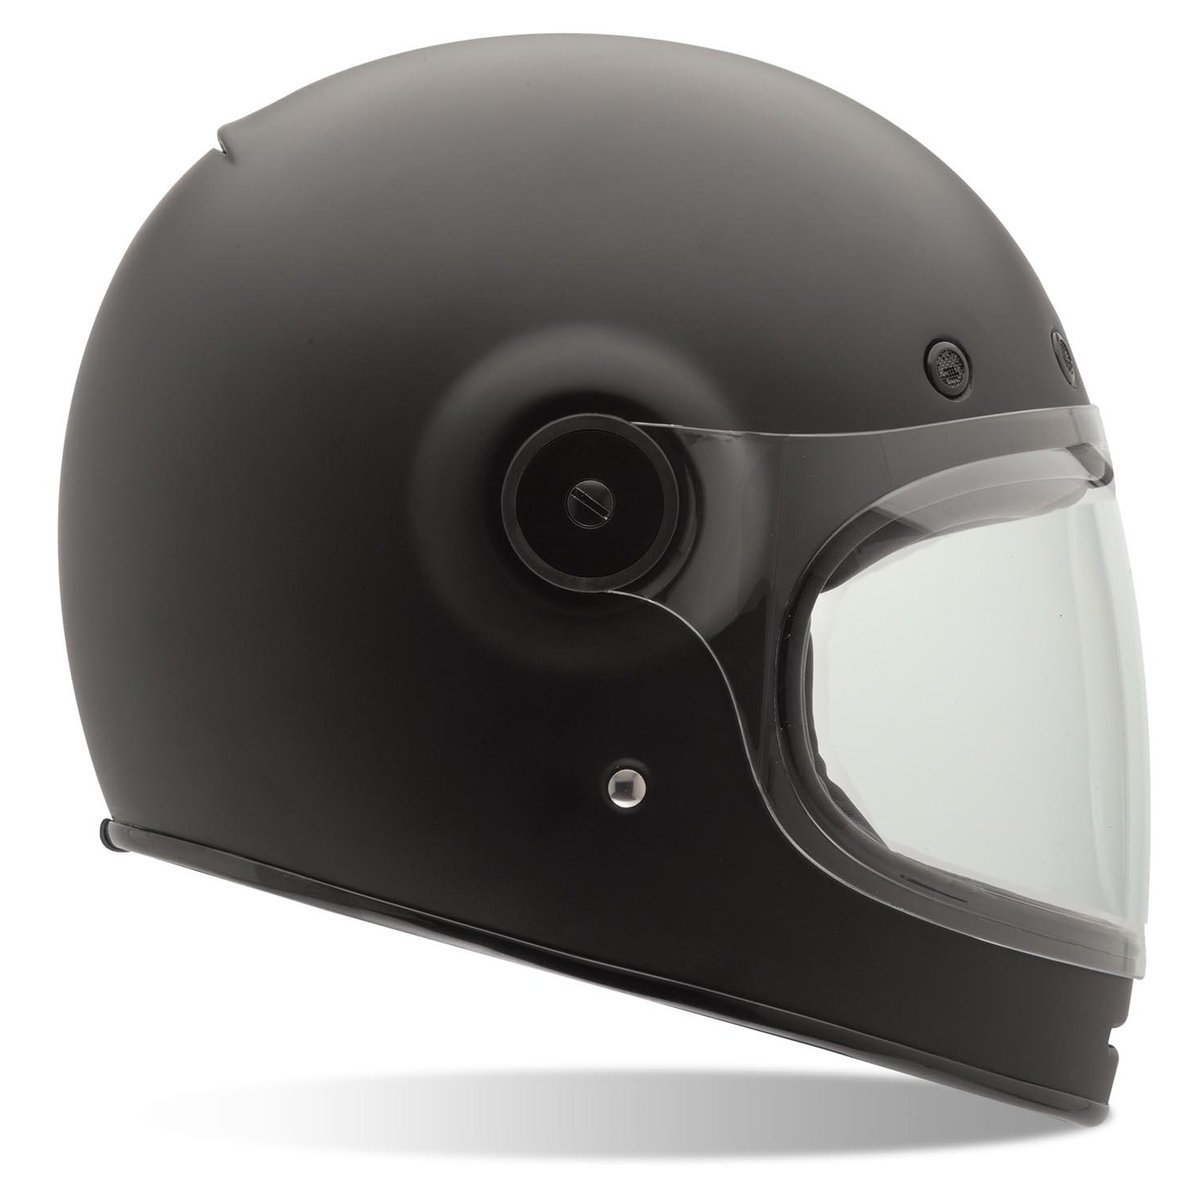 Amazon.com: Bell Bullitt Full Face Motorcycle Helmet (Solid Matte Black, Medium) (Non-Current Graphic): Automotive